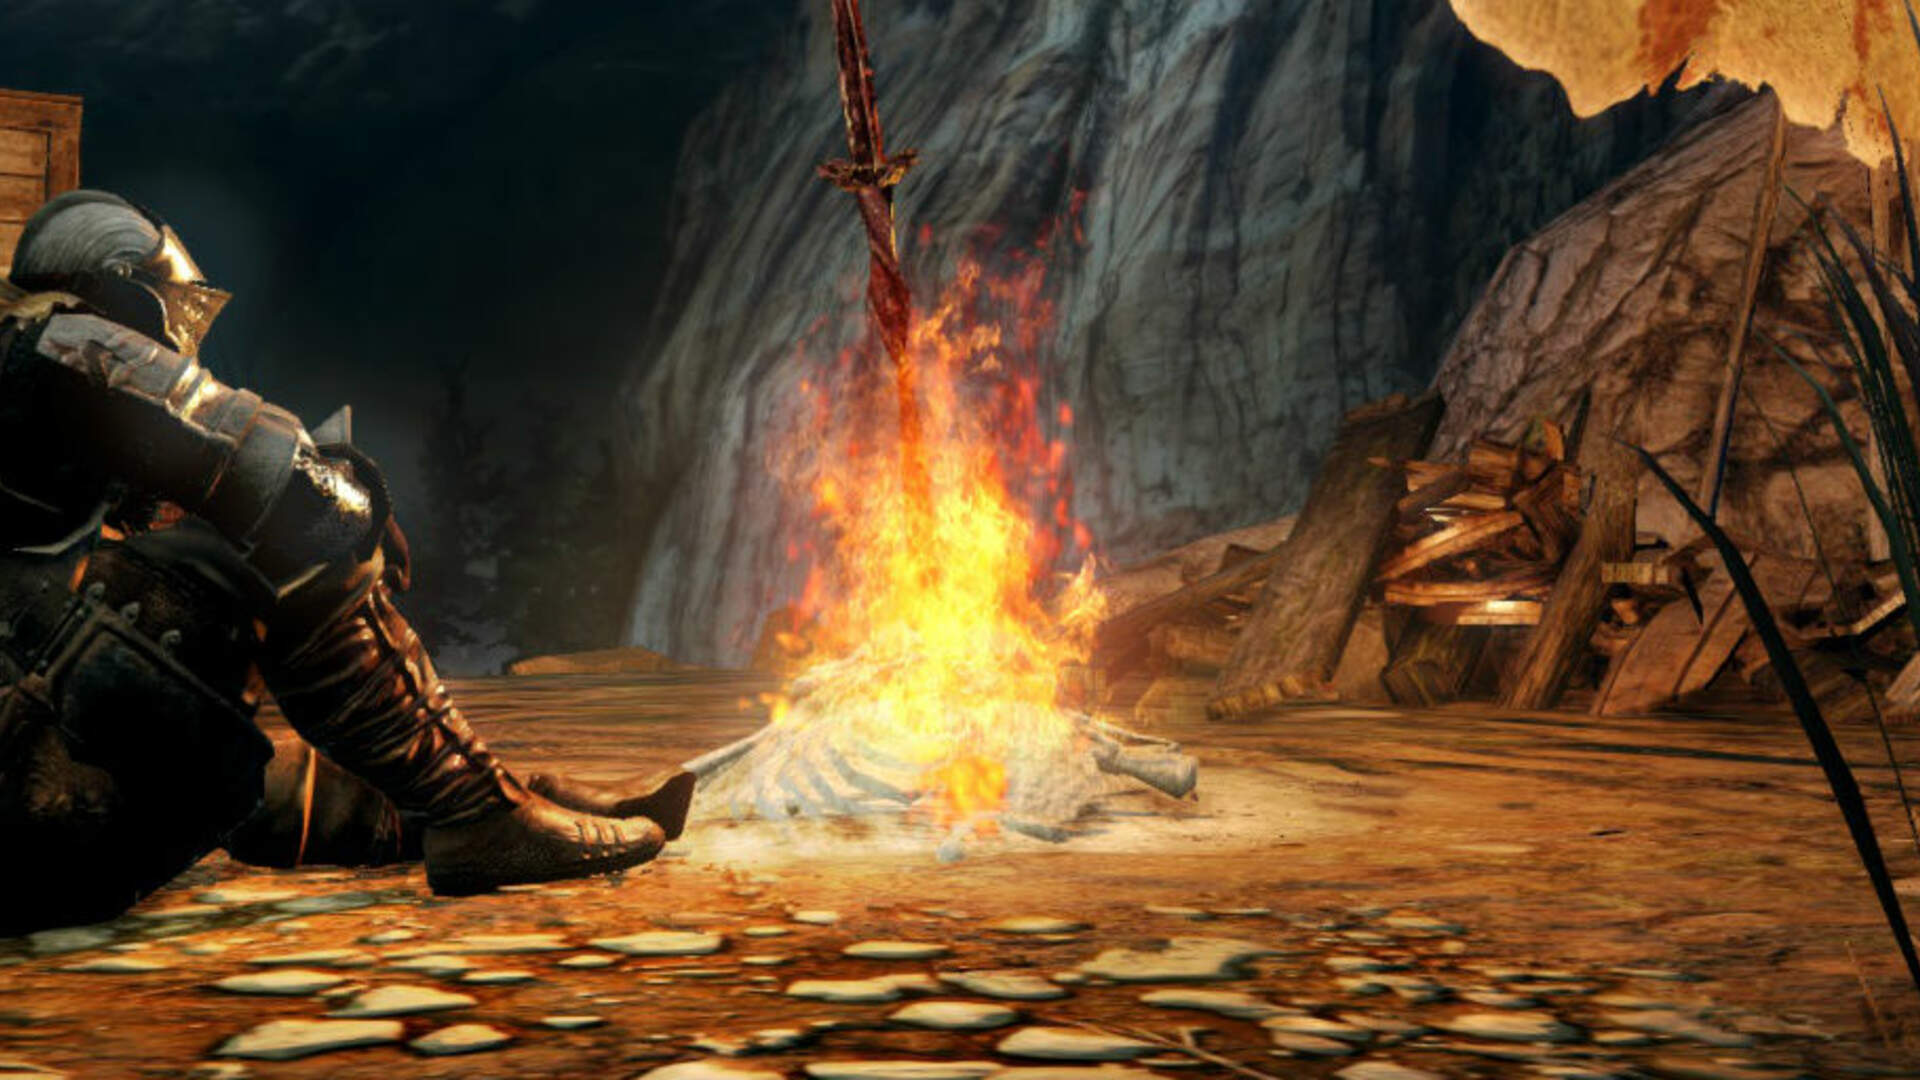 Dark Souls 2 Guide: Return to Huntsman's Copse and the Battle Against the Skeleton Lords